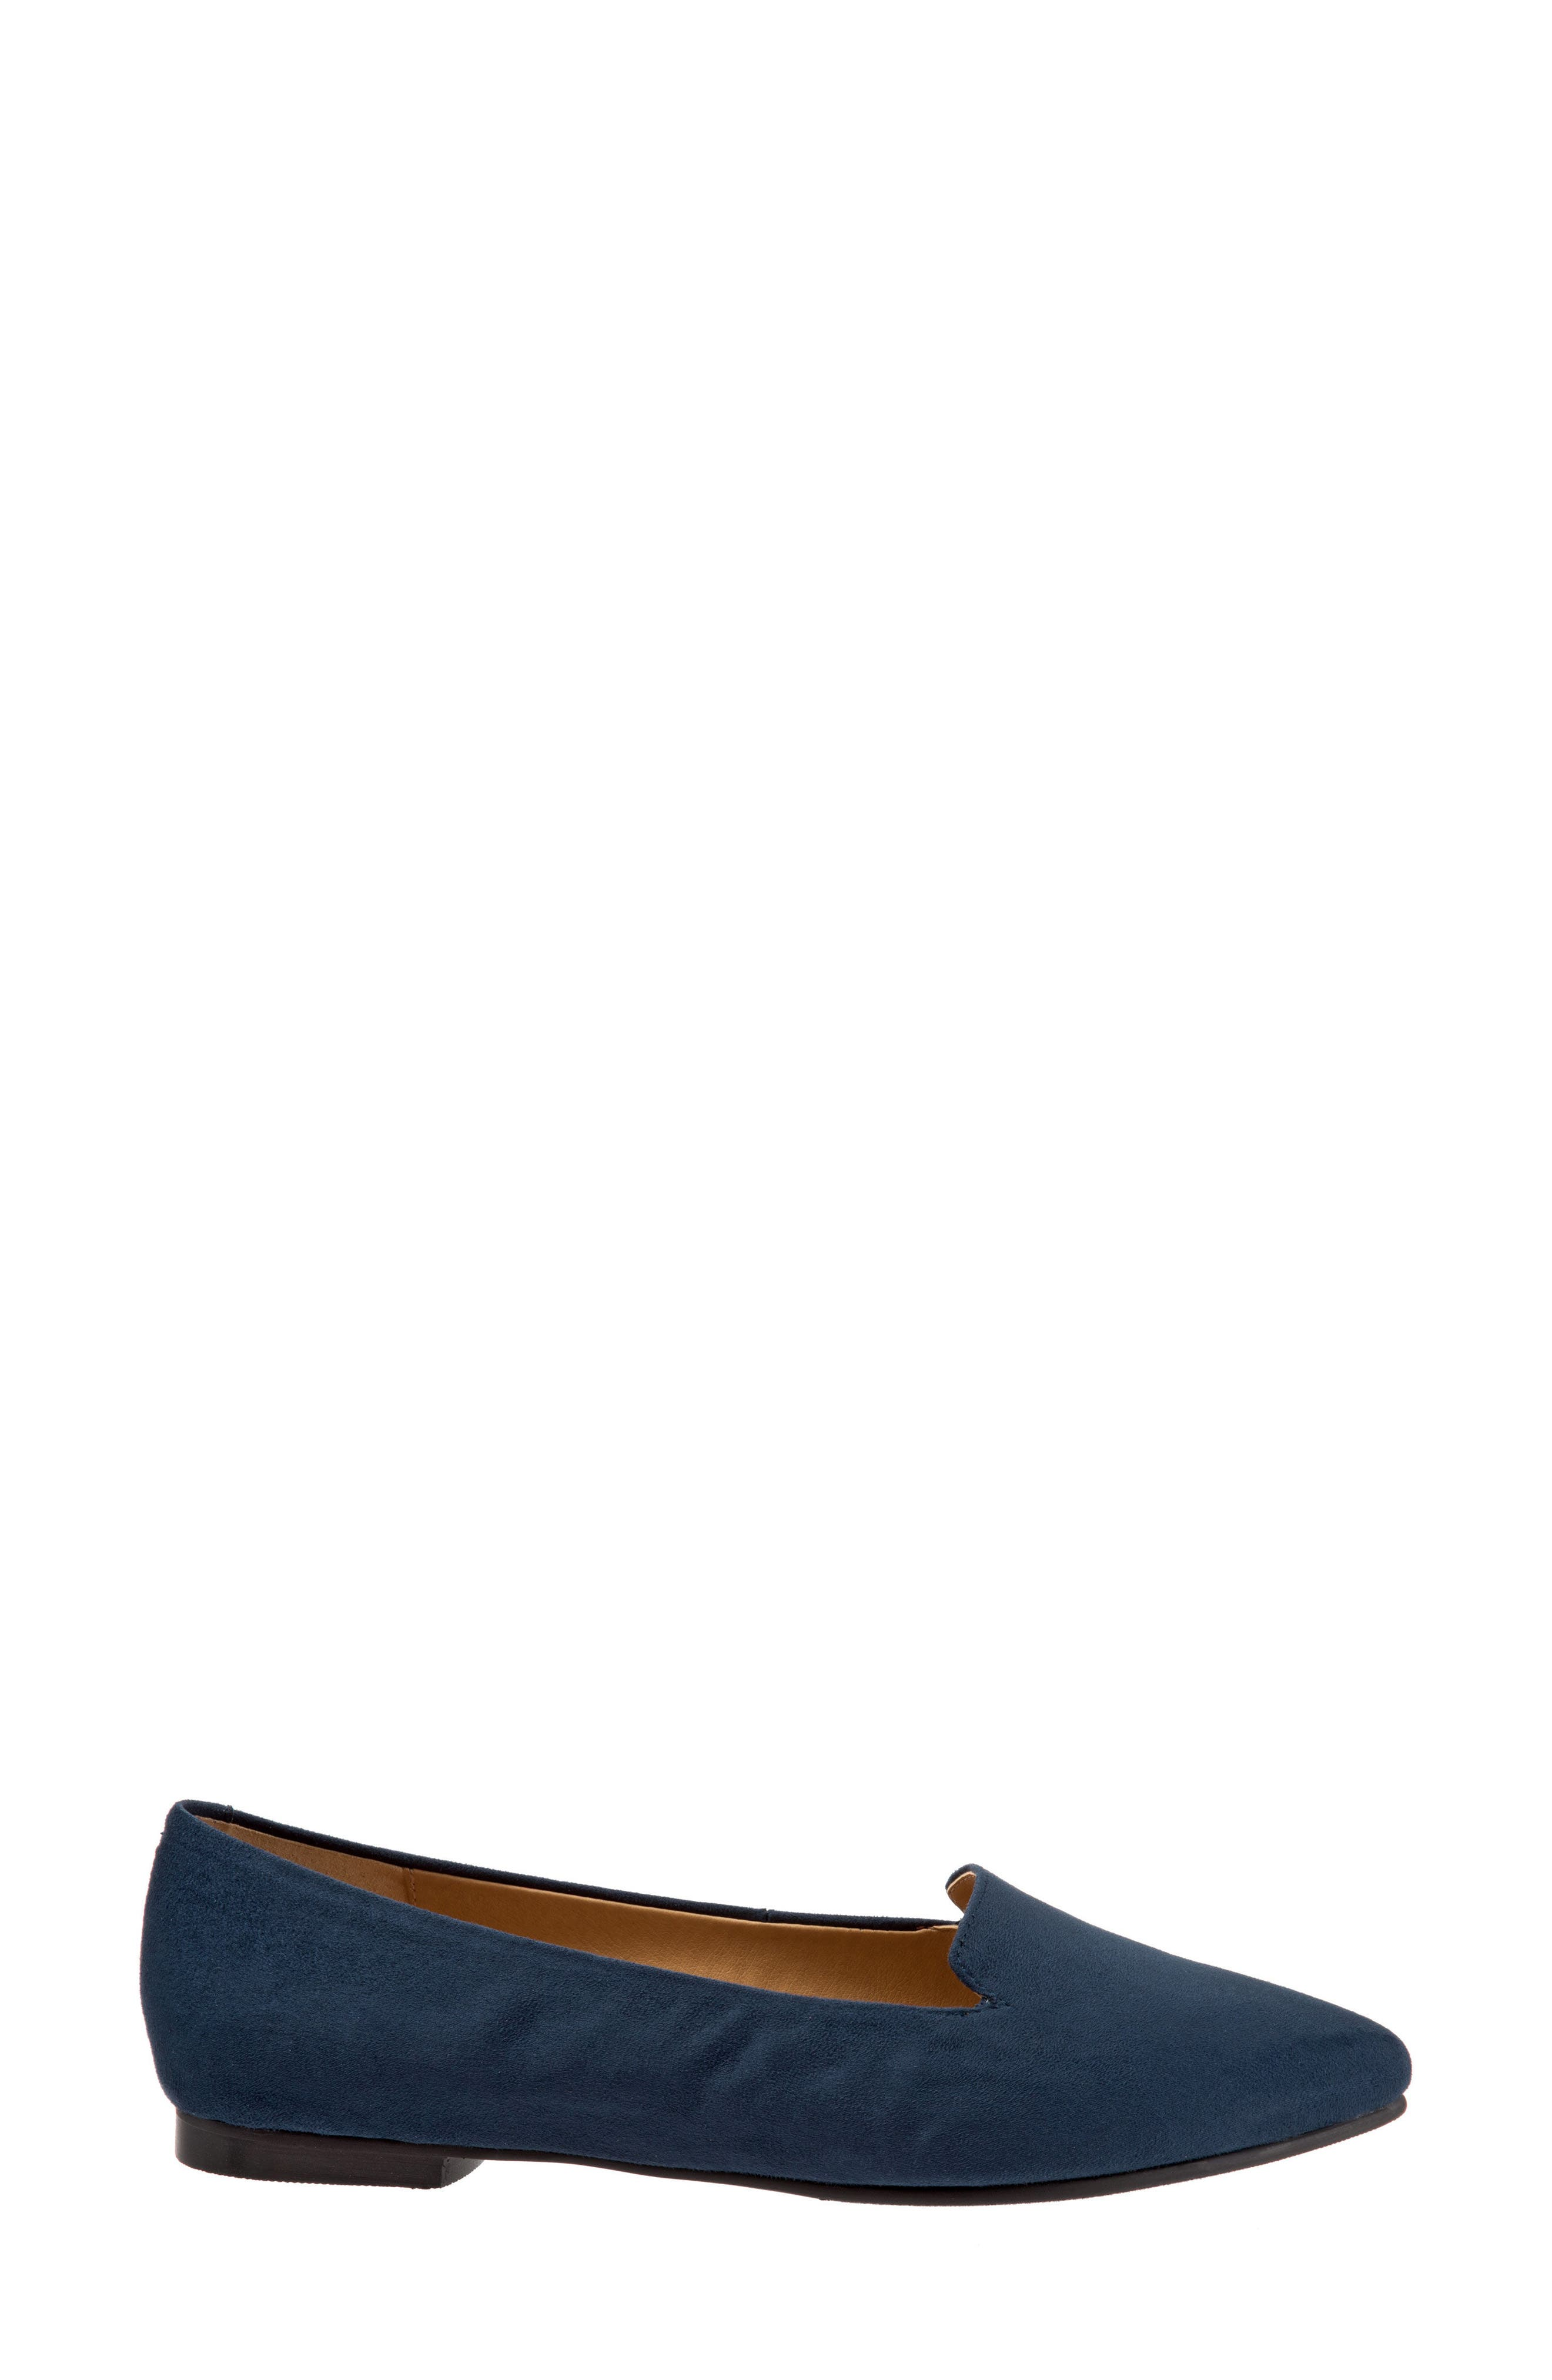 Harlowe Pointy Toe Loafer,                             Alternate thumbnail 3, color,                             Navy Leather